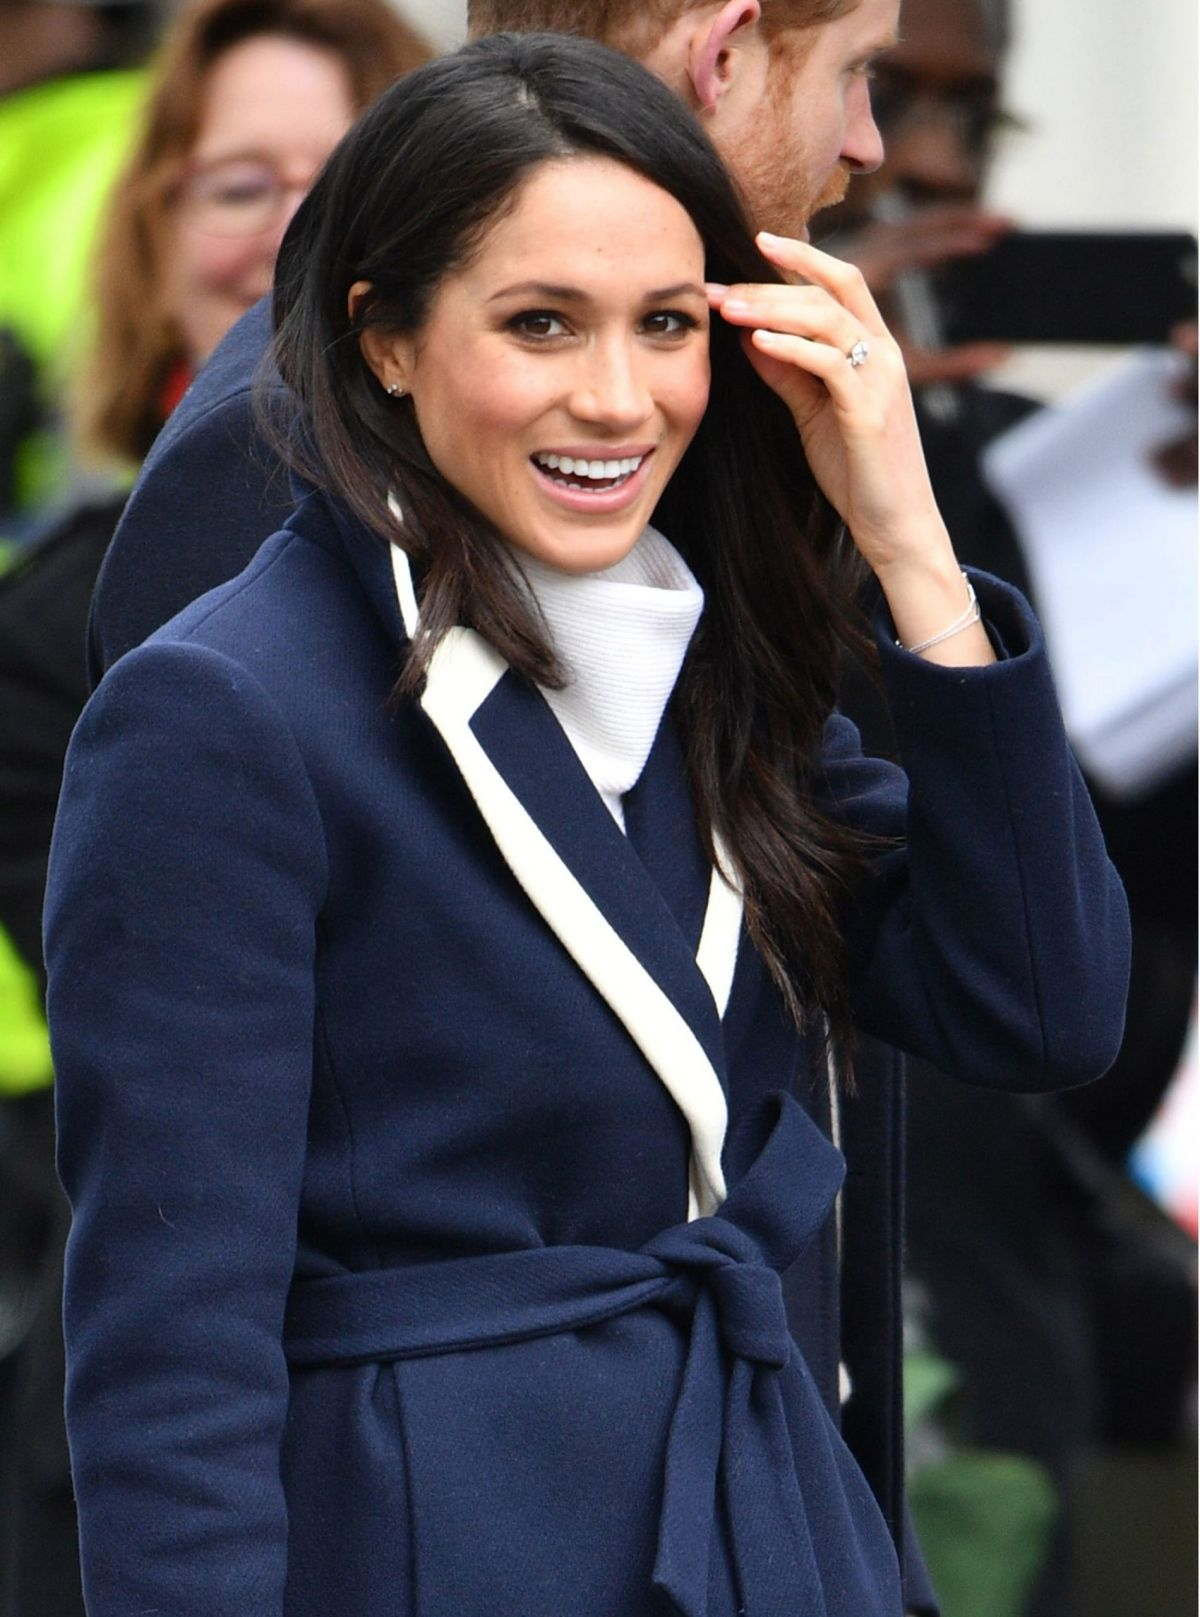 Meghan Markle's sweet gesture to 10-year-old girl who aspires to be like her